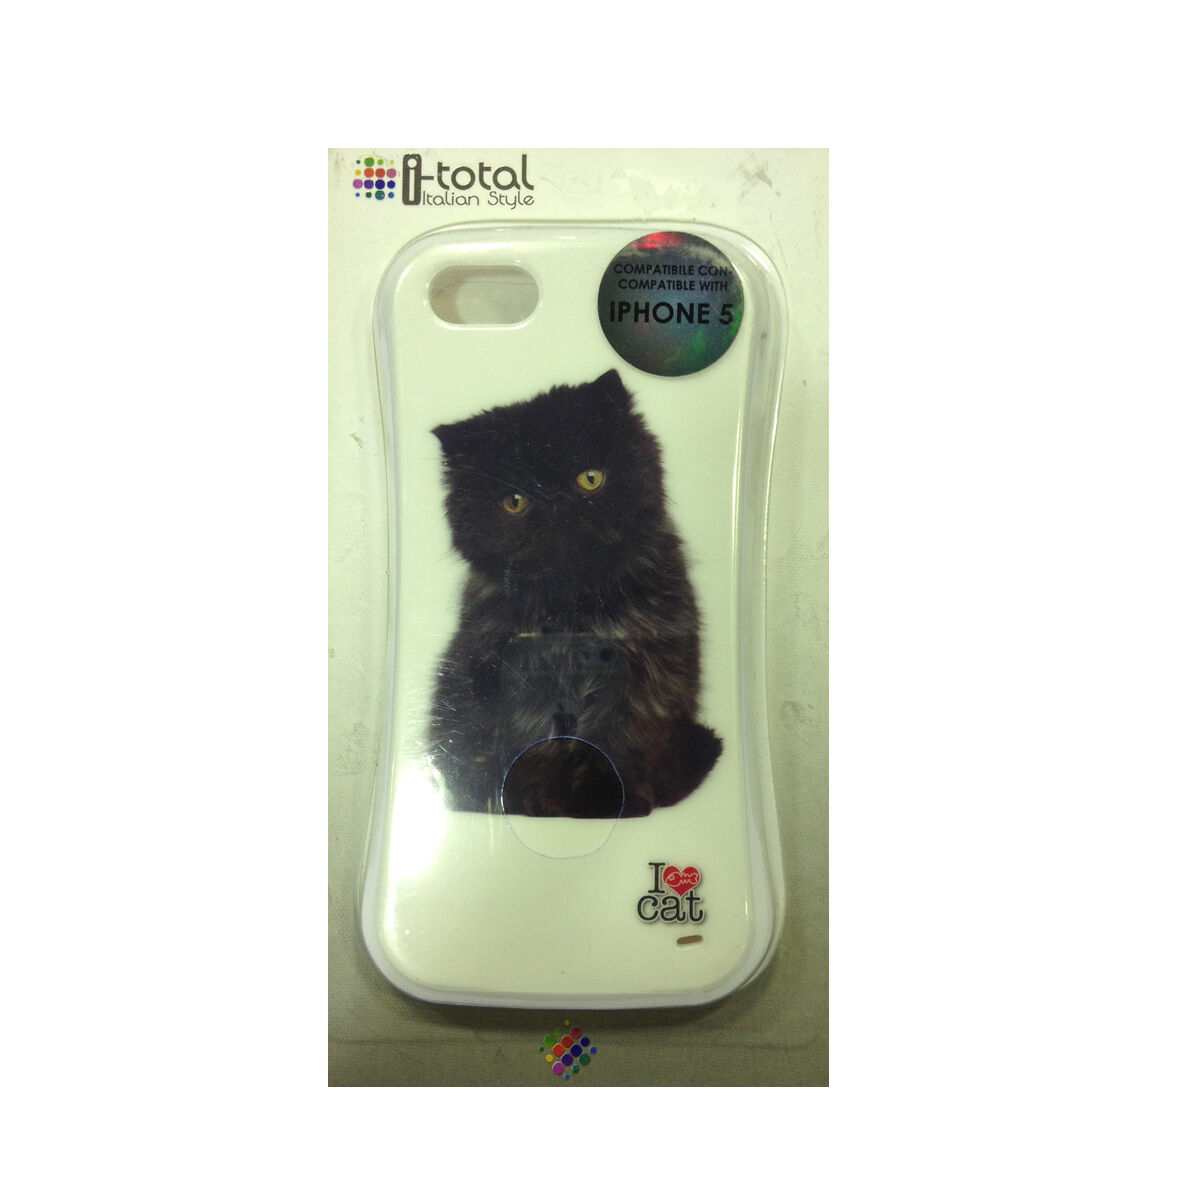 COVER mascherina iphone 5/5S bianca gatto nero rigida in ABS I-TOTAL